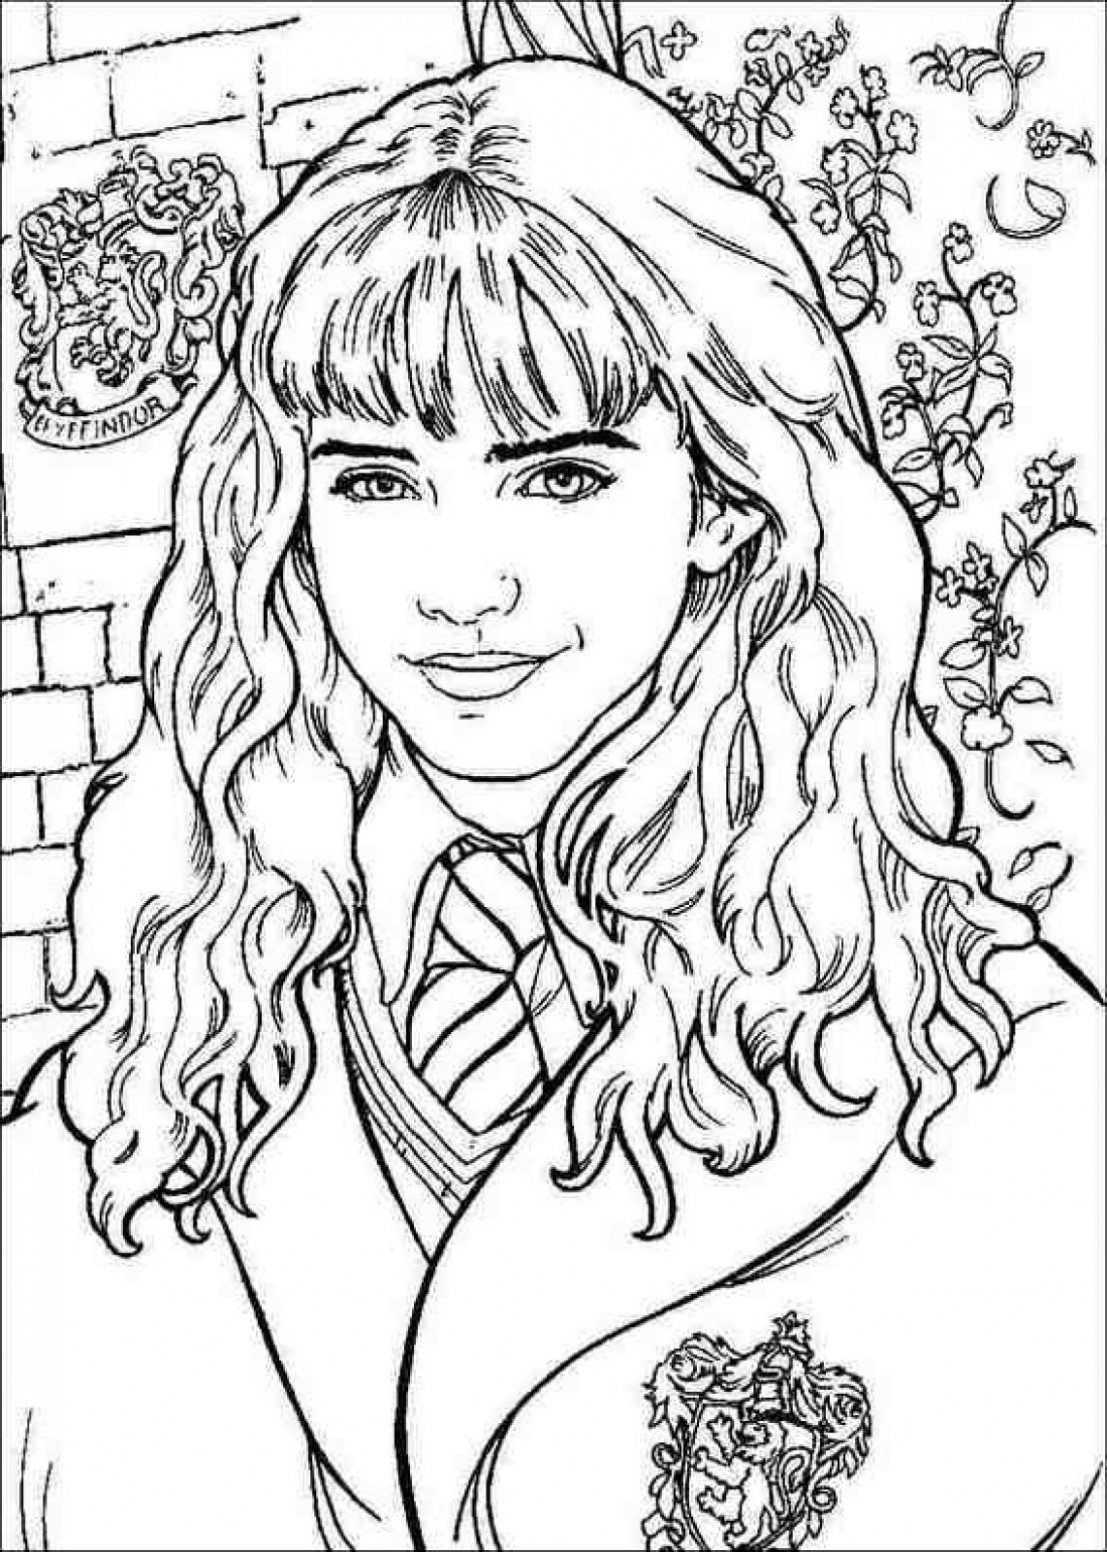 Harry Potter Coloring Pages Pdf Download | Coloring Book - harry potter coloring book pdf